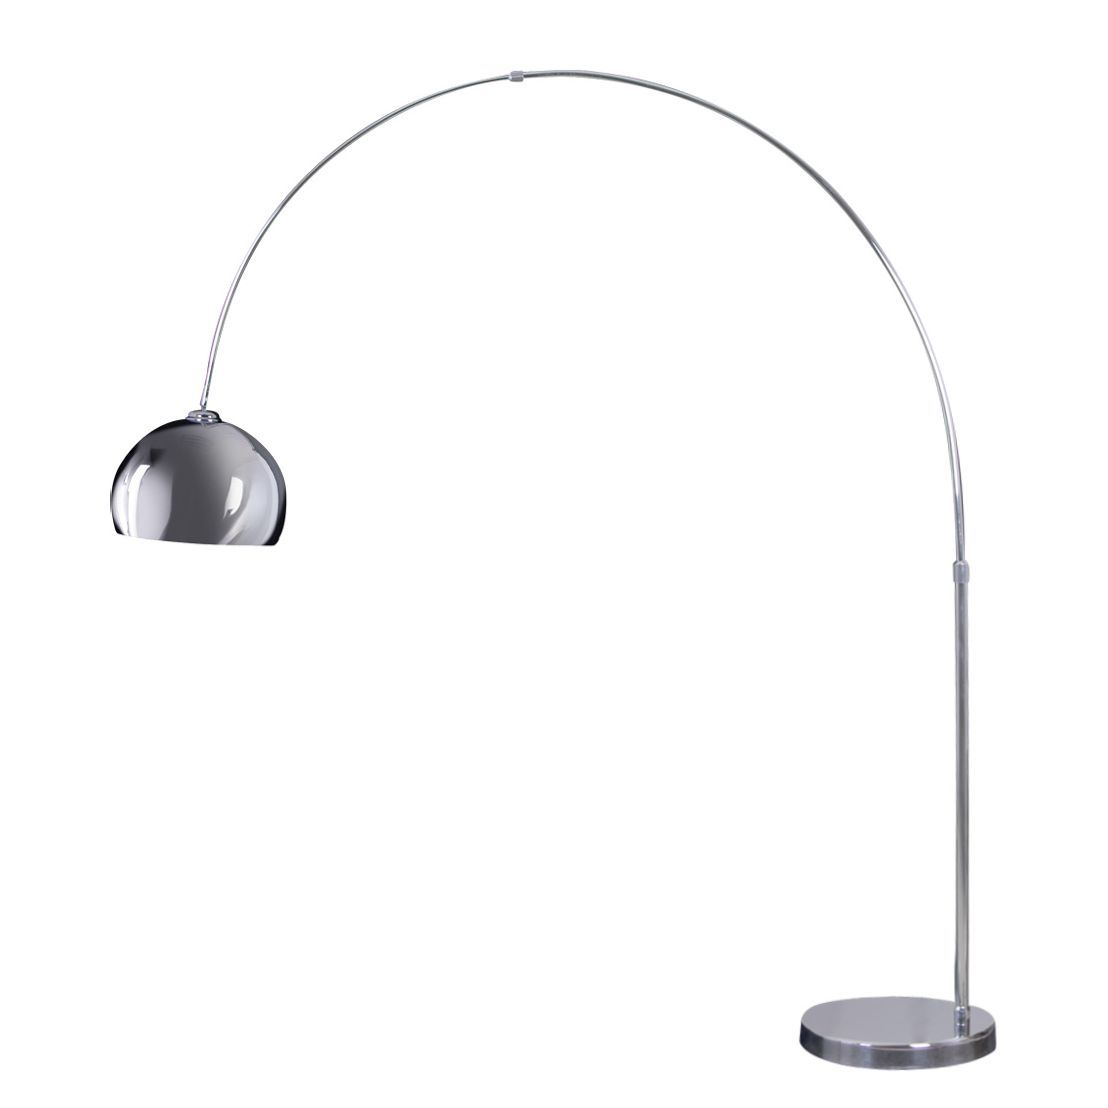 Bogenleuchte Castiglioni Pin By Ladendirekt On Stehlampen Floor Lamp Lighting